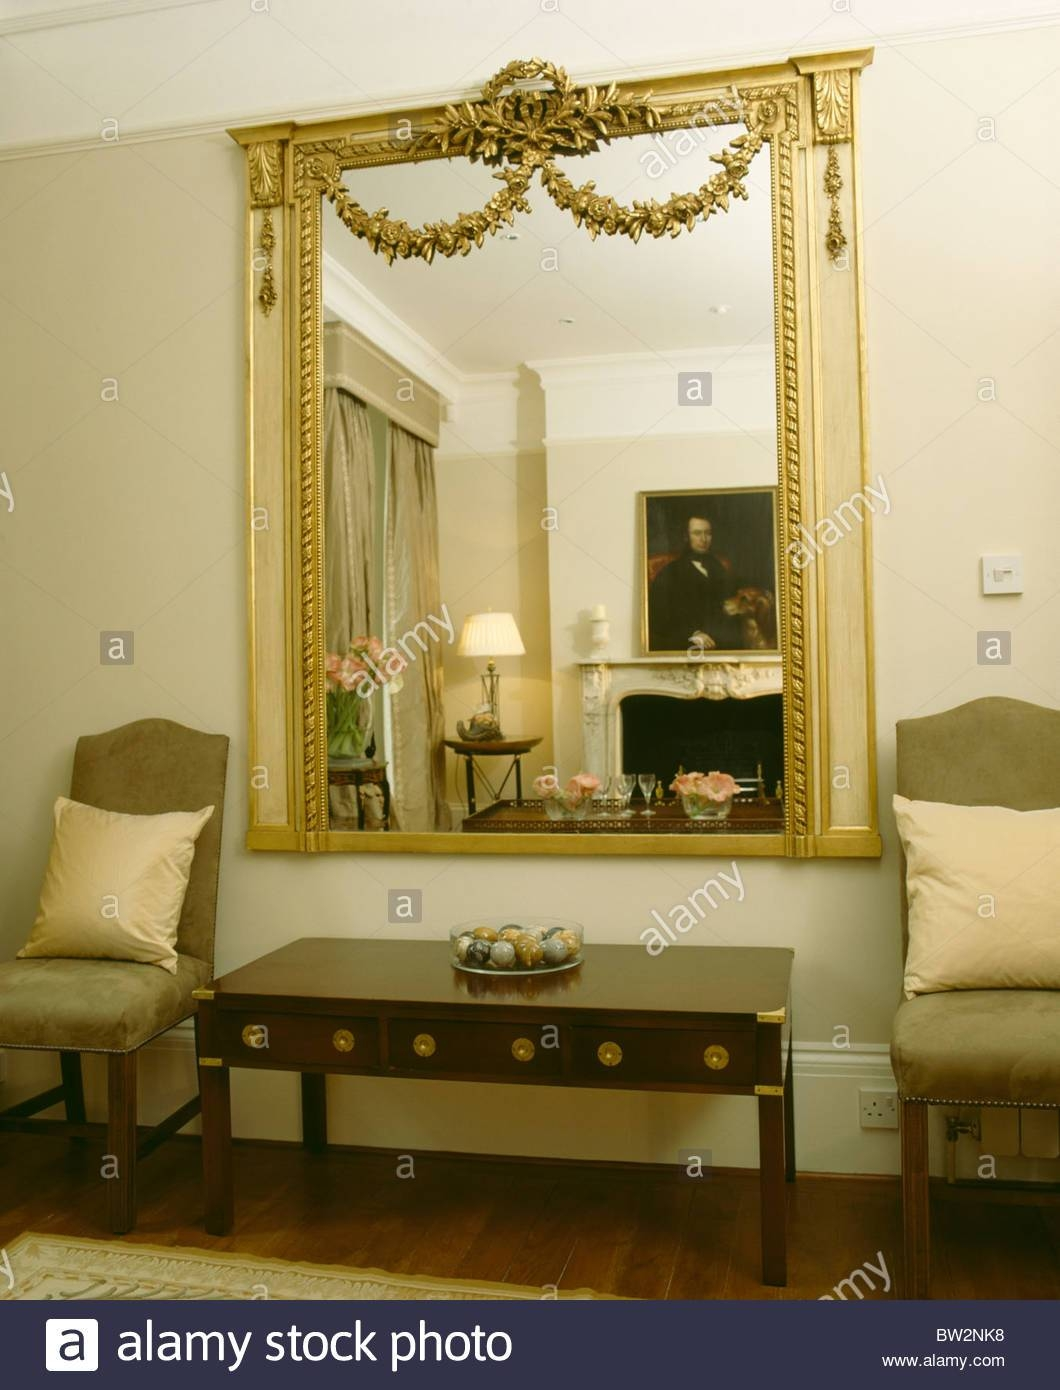 Large Ornate Gilt Antique Mirror On Wall Above Console Table In regarding Large Ornate Mirrors For Wall (Image 17 of 25)